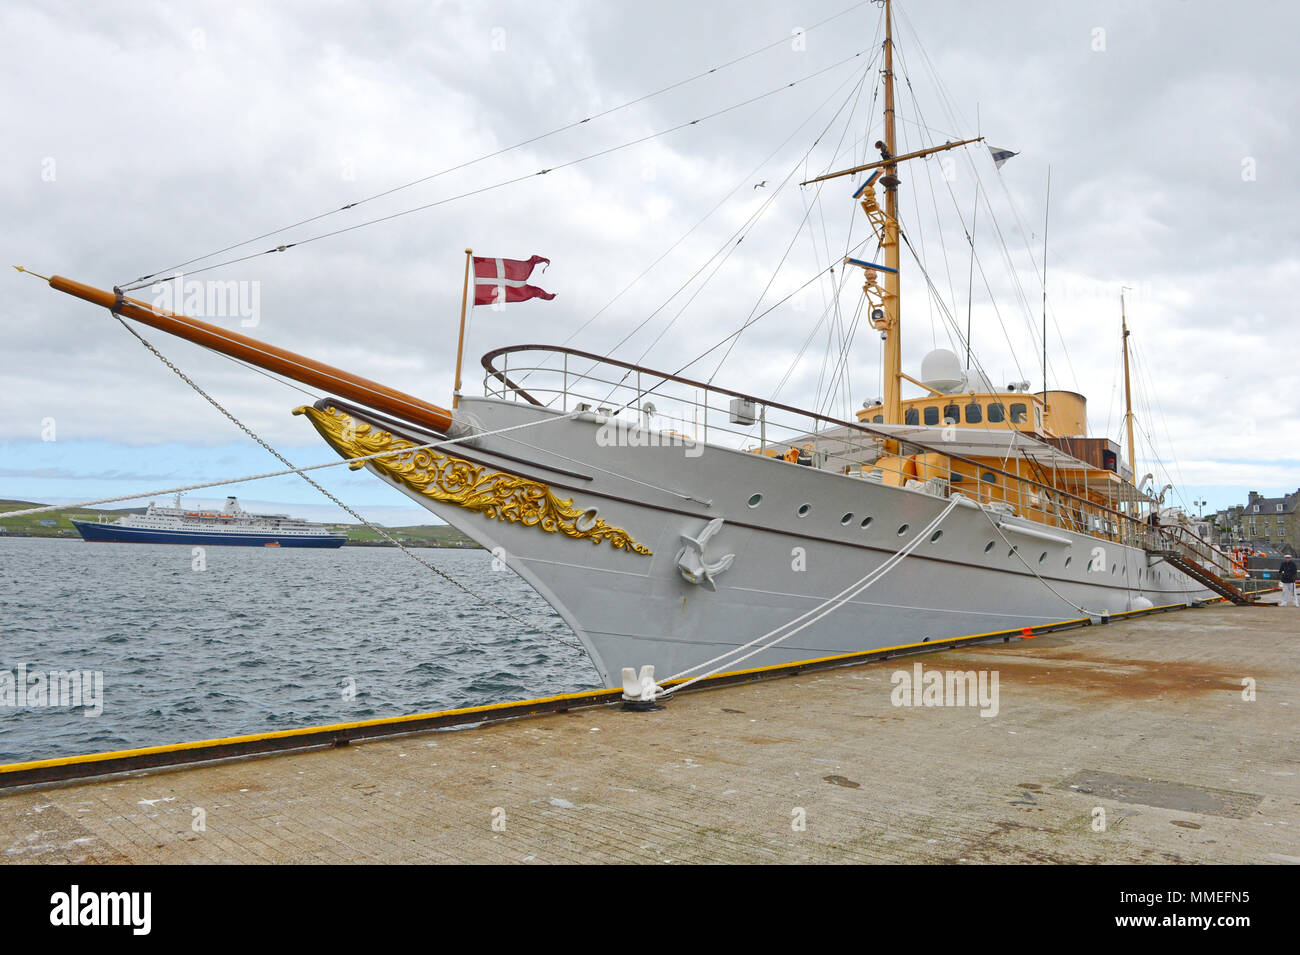 The Danish Royal boat the Dannebrog on her visit to Lerwick in the Shetland Isles Stock Photo